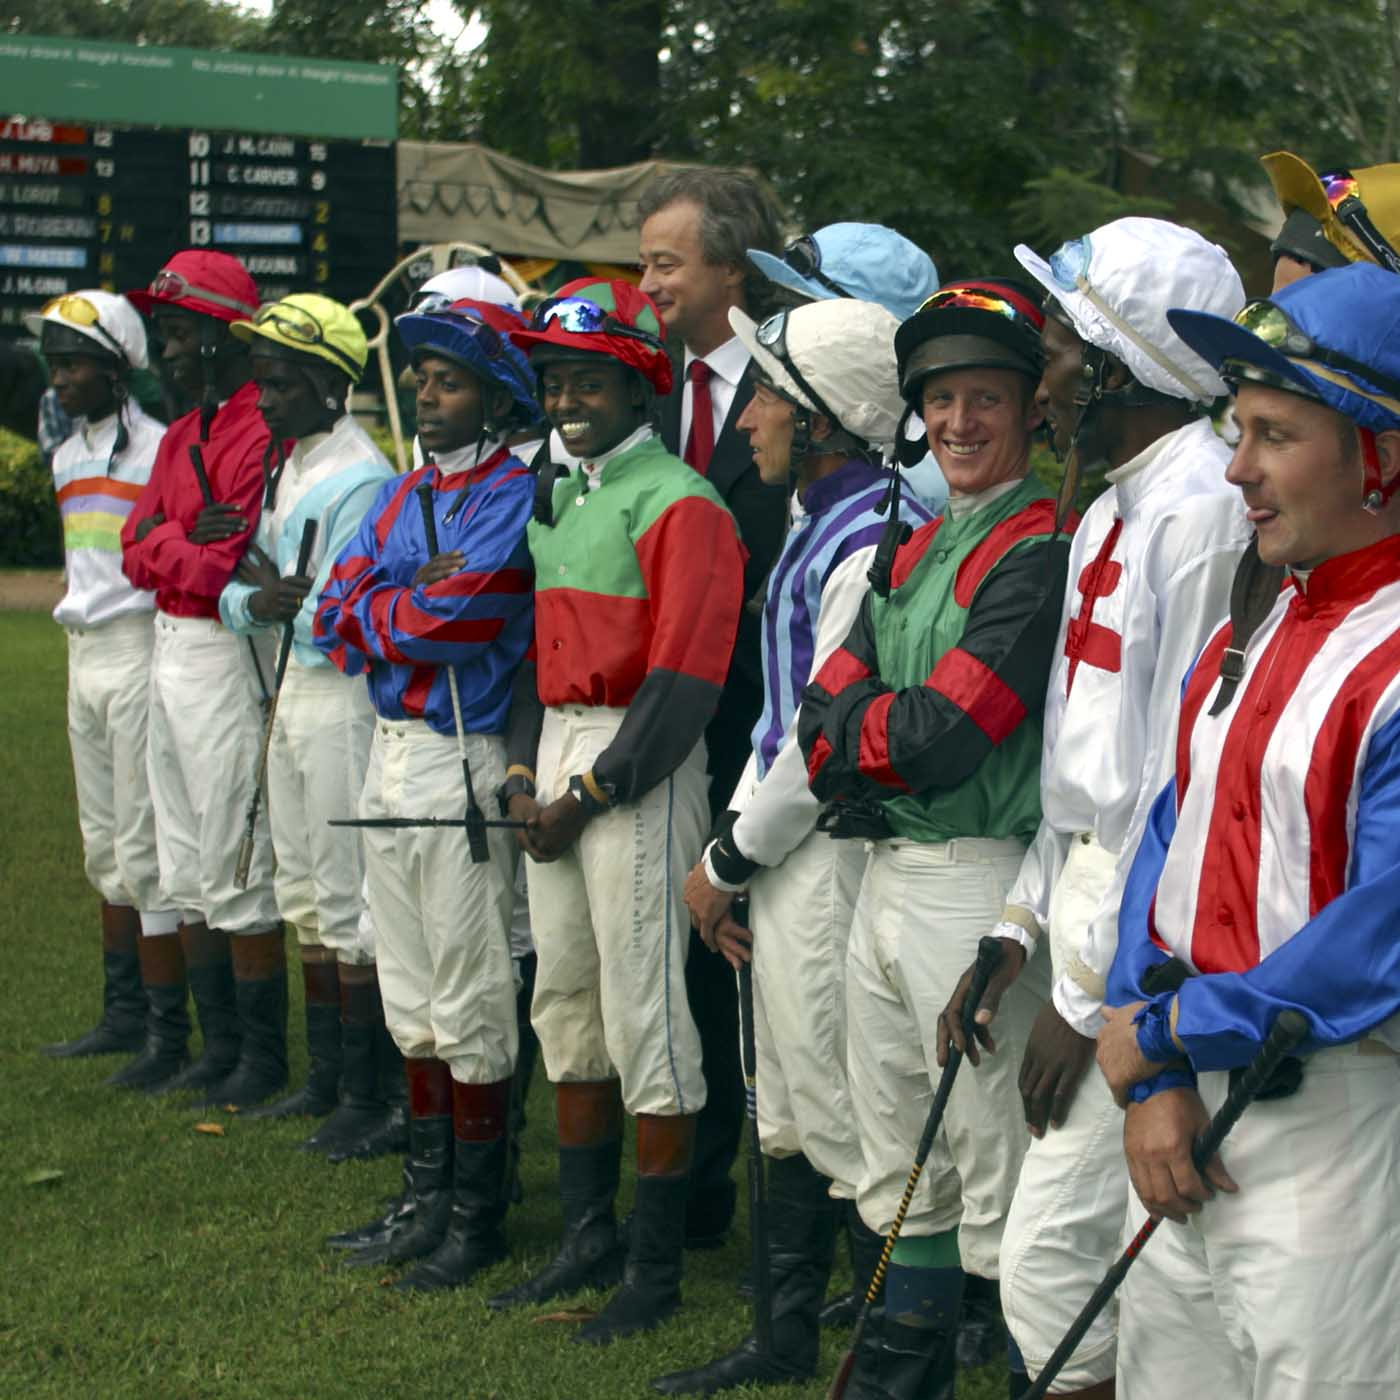 Nairobi, Kenya, May 9th 2004 The jockeys posing for a picture before the Kenyan Derby 2004.